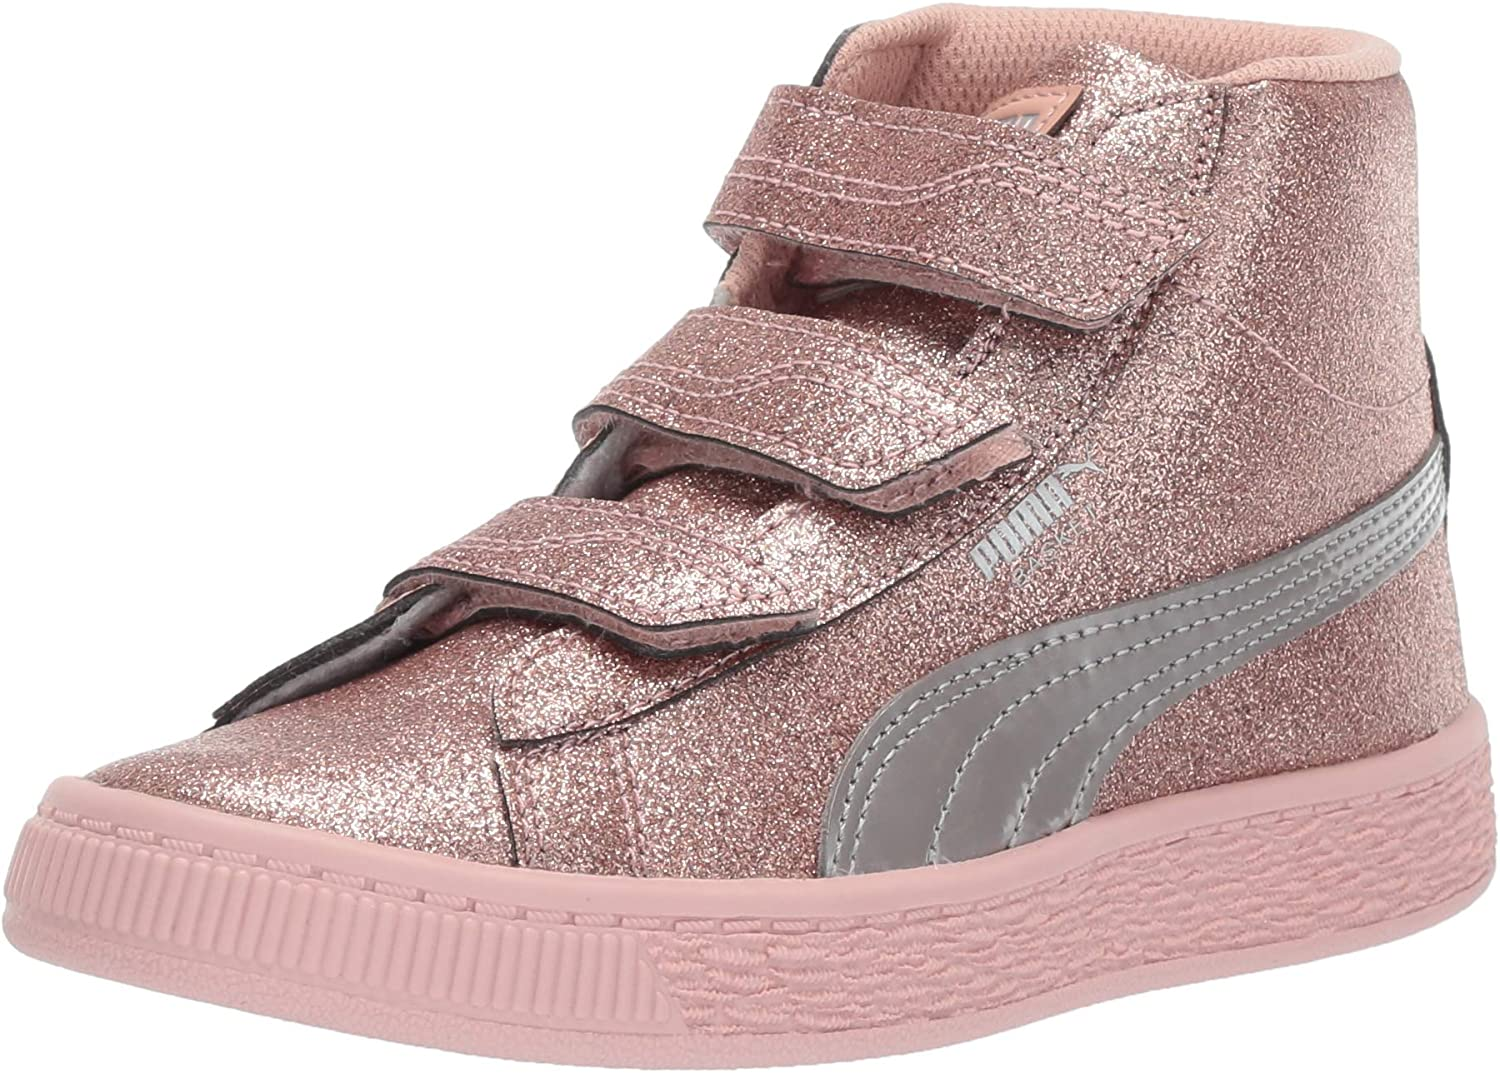 Lowest price challenge PUMA Unisex-Child Quality inspection Basket Mid Strap Sneaker and Loop Hook Glitz